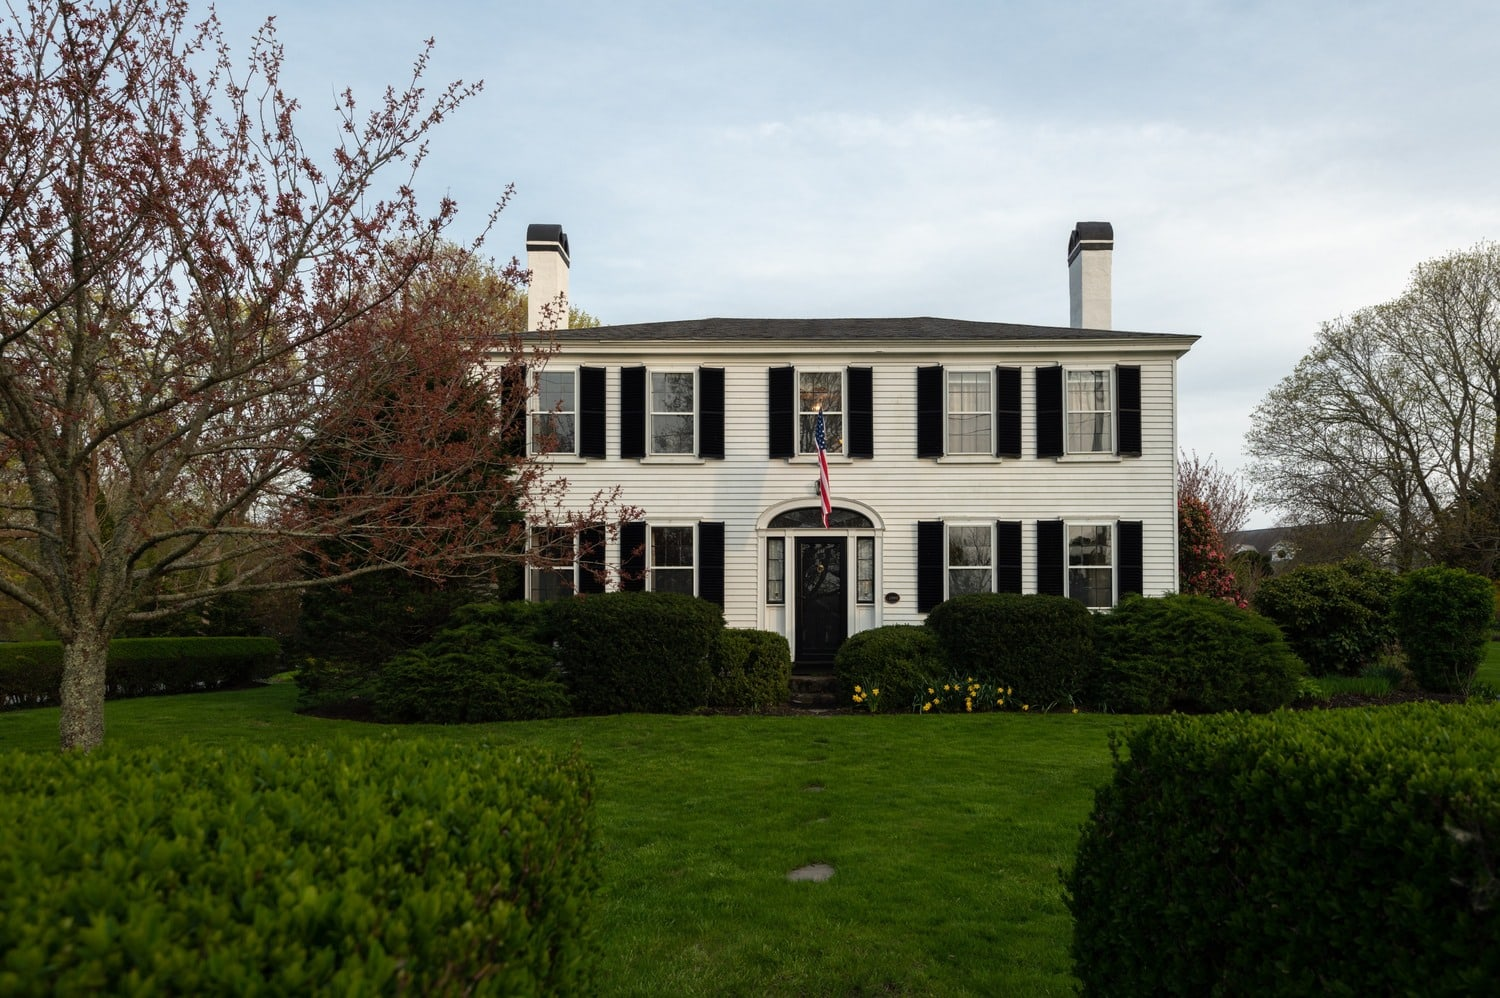 Stay at the Candleberry Inn Cape Cod Bed and Breakfast near the Cape Cod Rail Trail